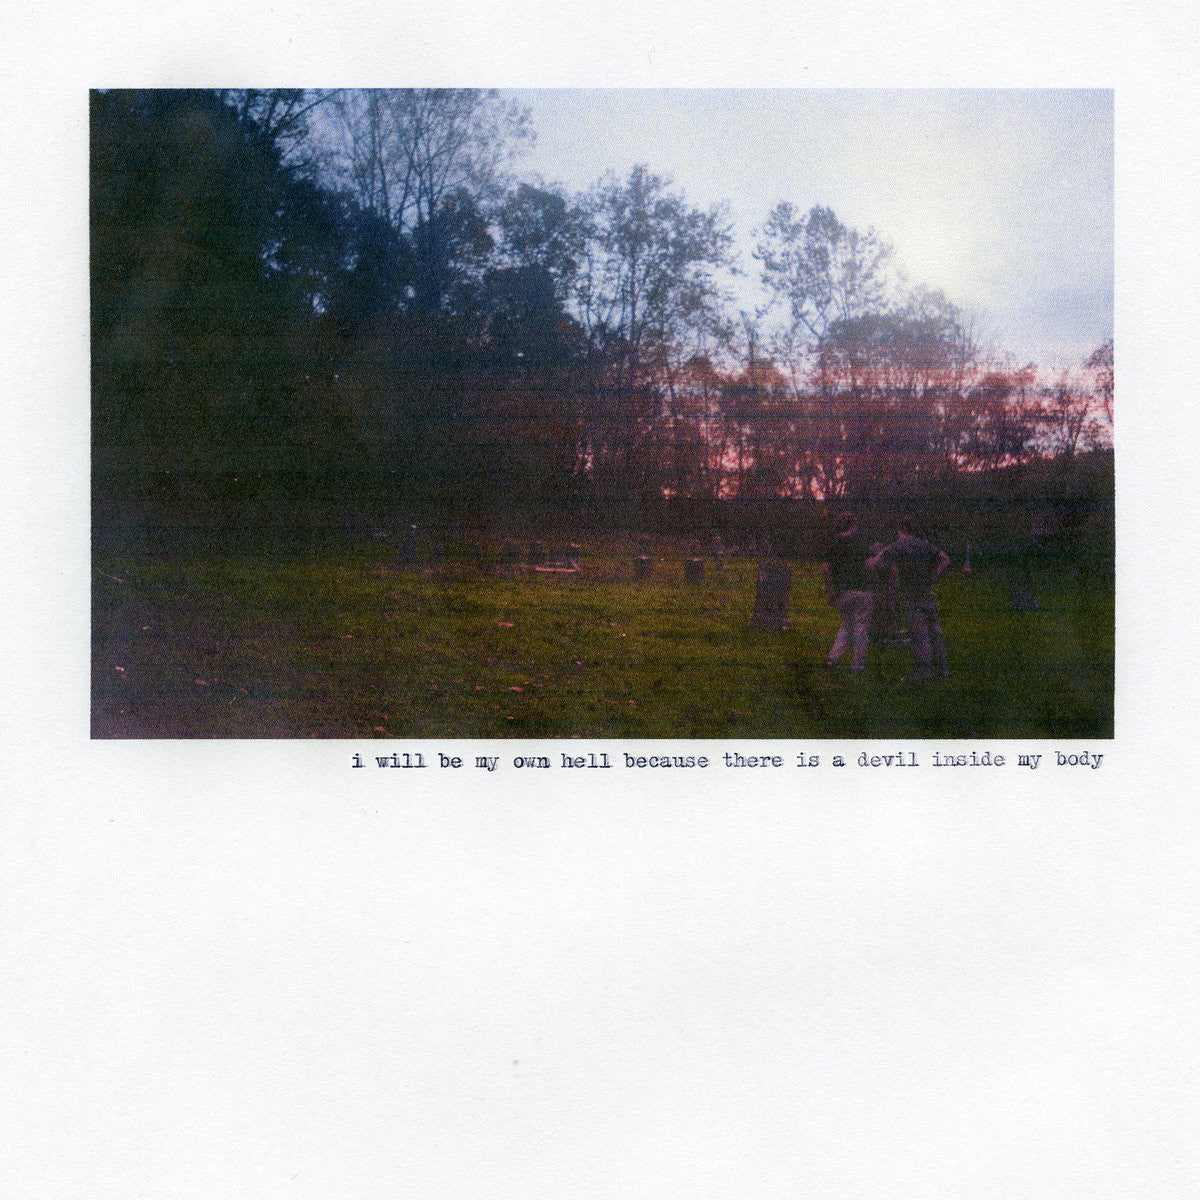 Teen Suicide ‎– I Will Be My Own Hell Because There Is A Devil Inside My Body - New Lp Record 2015 Run for Cover USA Brown Vinyl & Download - Indie Rock / Lo-Fi / Punk